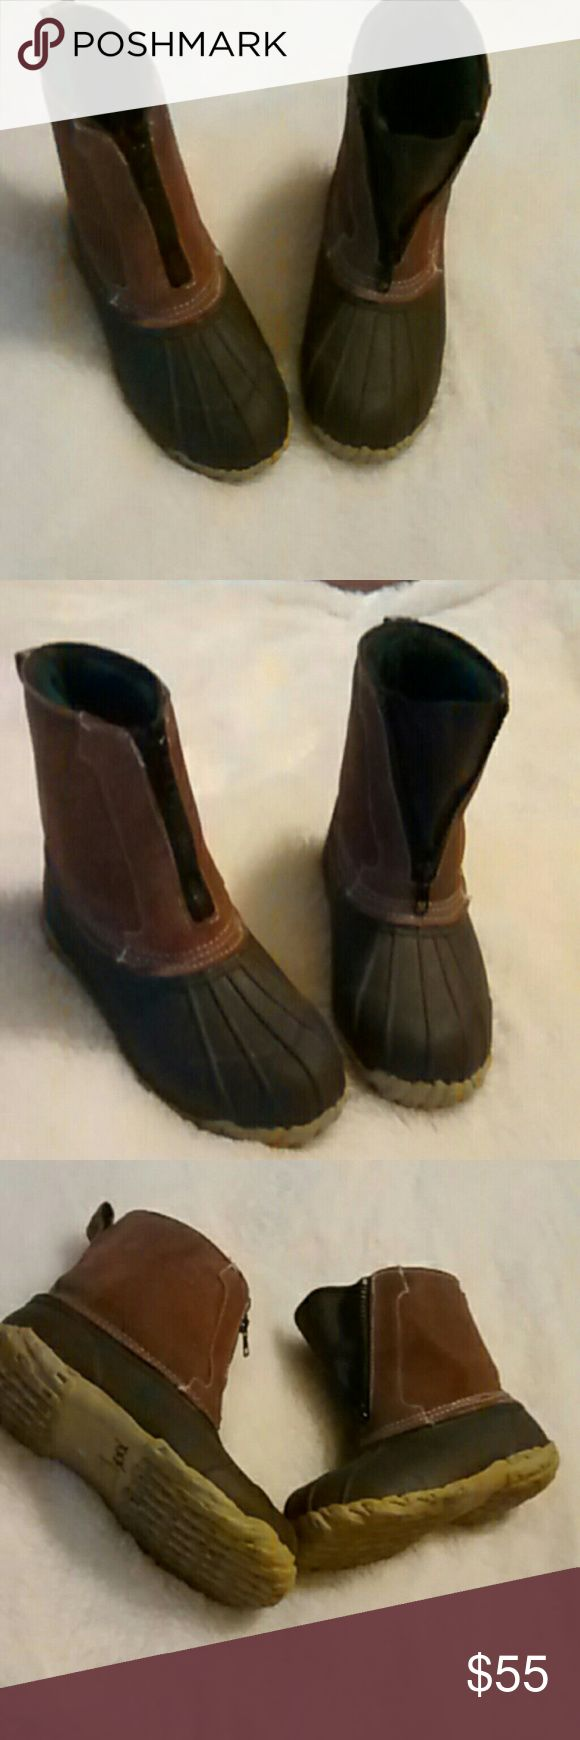 RedHead Thinsulate 200 Rain/Snow Boots These are very nice. Redhead boots thinsulate 200 gram. In great condition.  Size 6. Bought at Bass Pro they are a man but I wore these. I wear a women's 7-8.  Any questions please feel free to ask. Offers Welcome Happy Poshing! RedHead Shoes Rain & Snow Boots